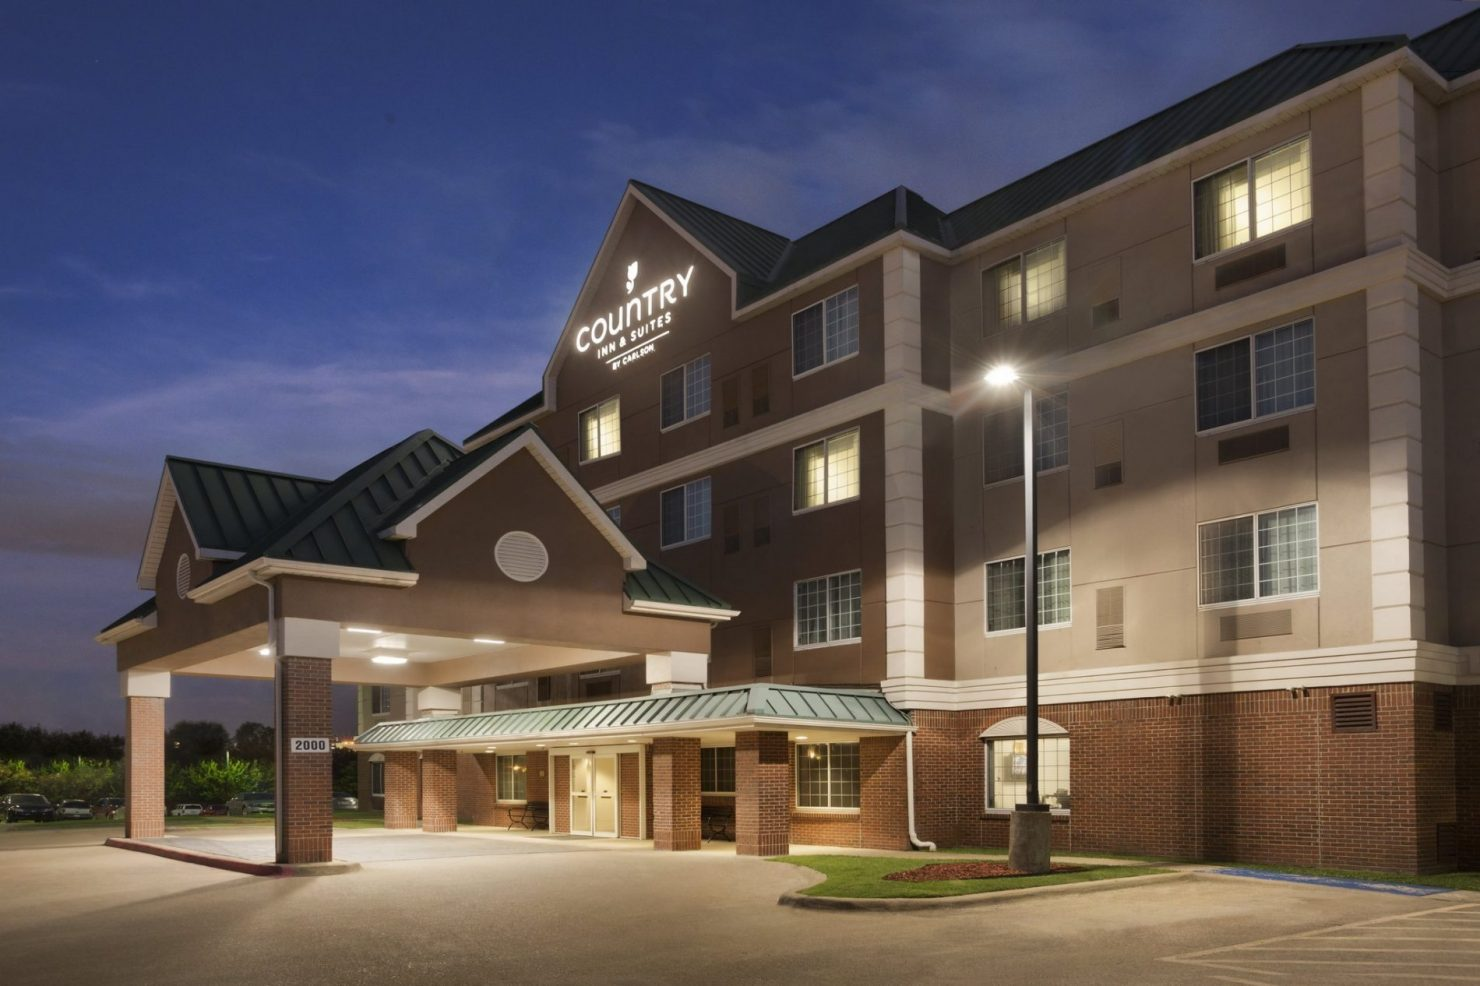 Country-Inn_Suites_dfwsfrontelev_night